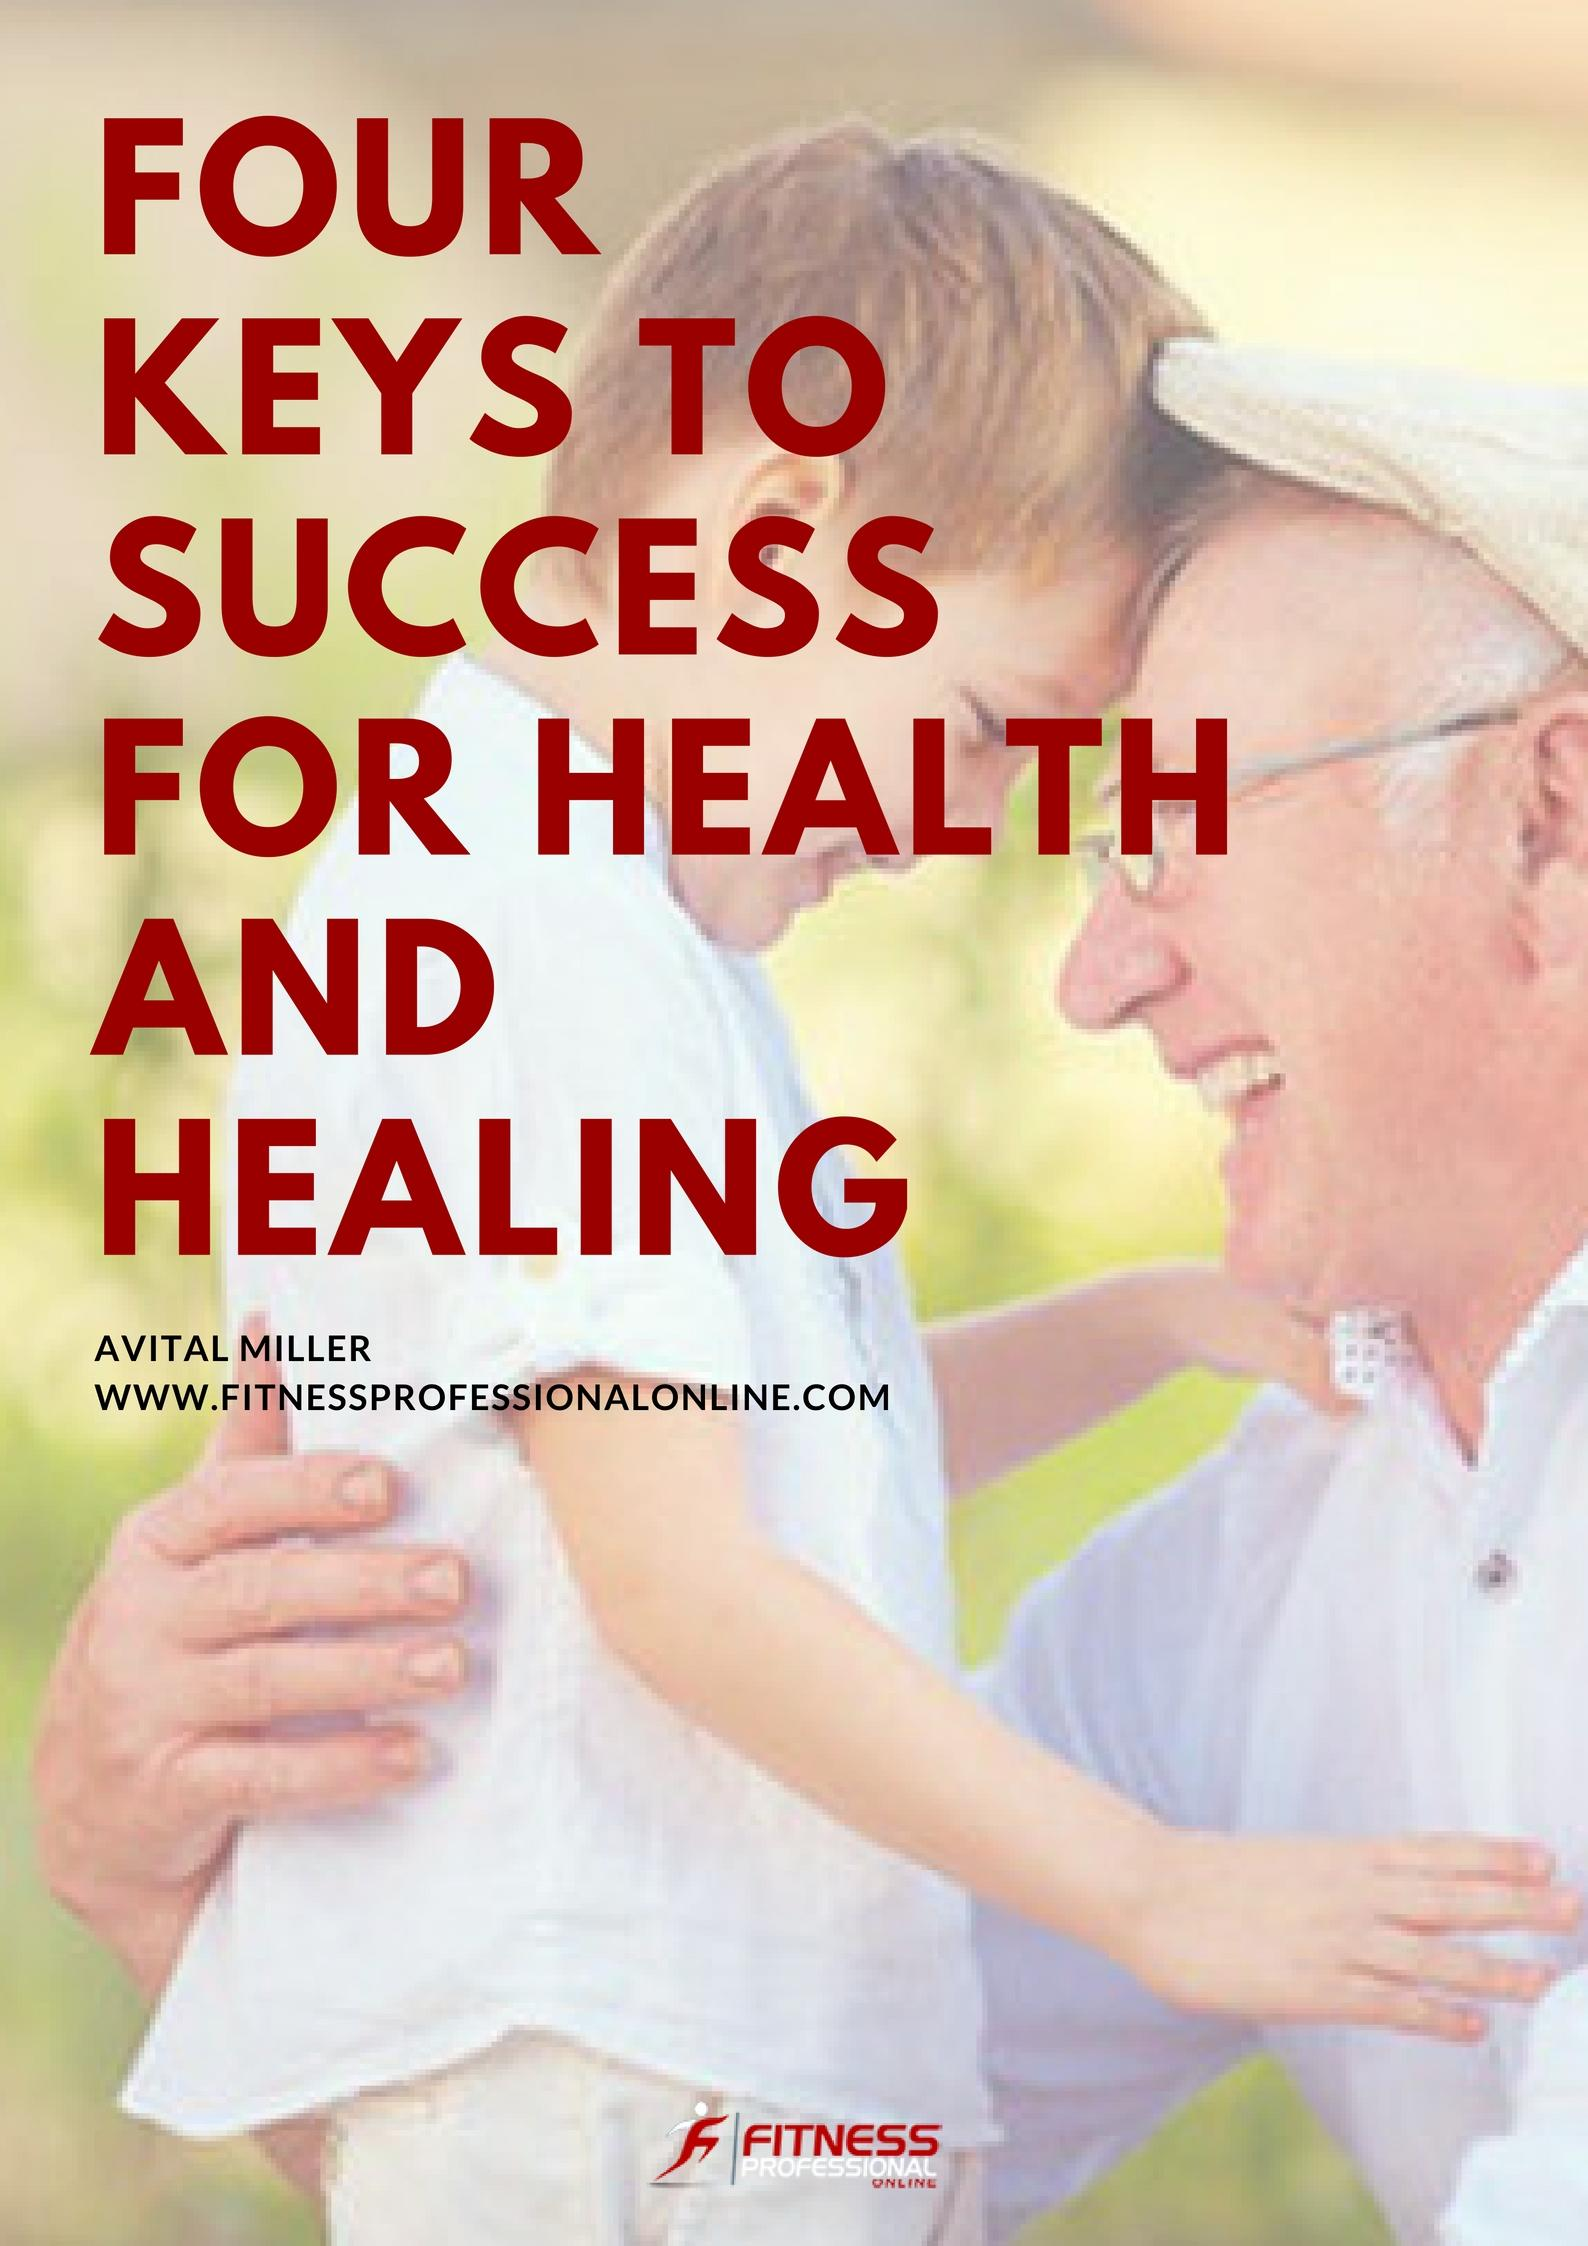 From this research there are four key take-aways to health, happiness, and success.